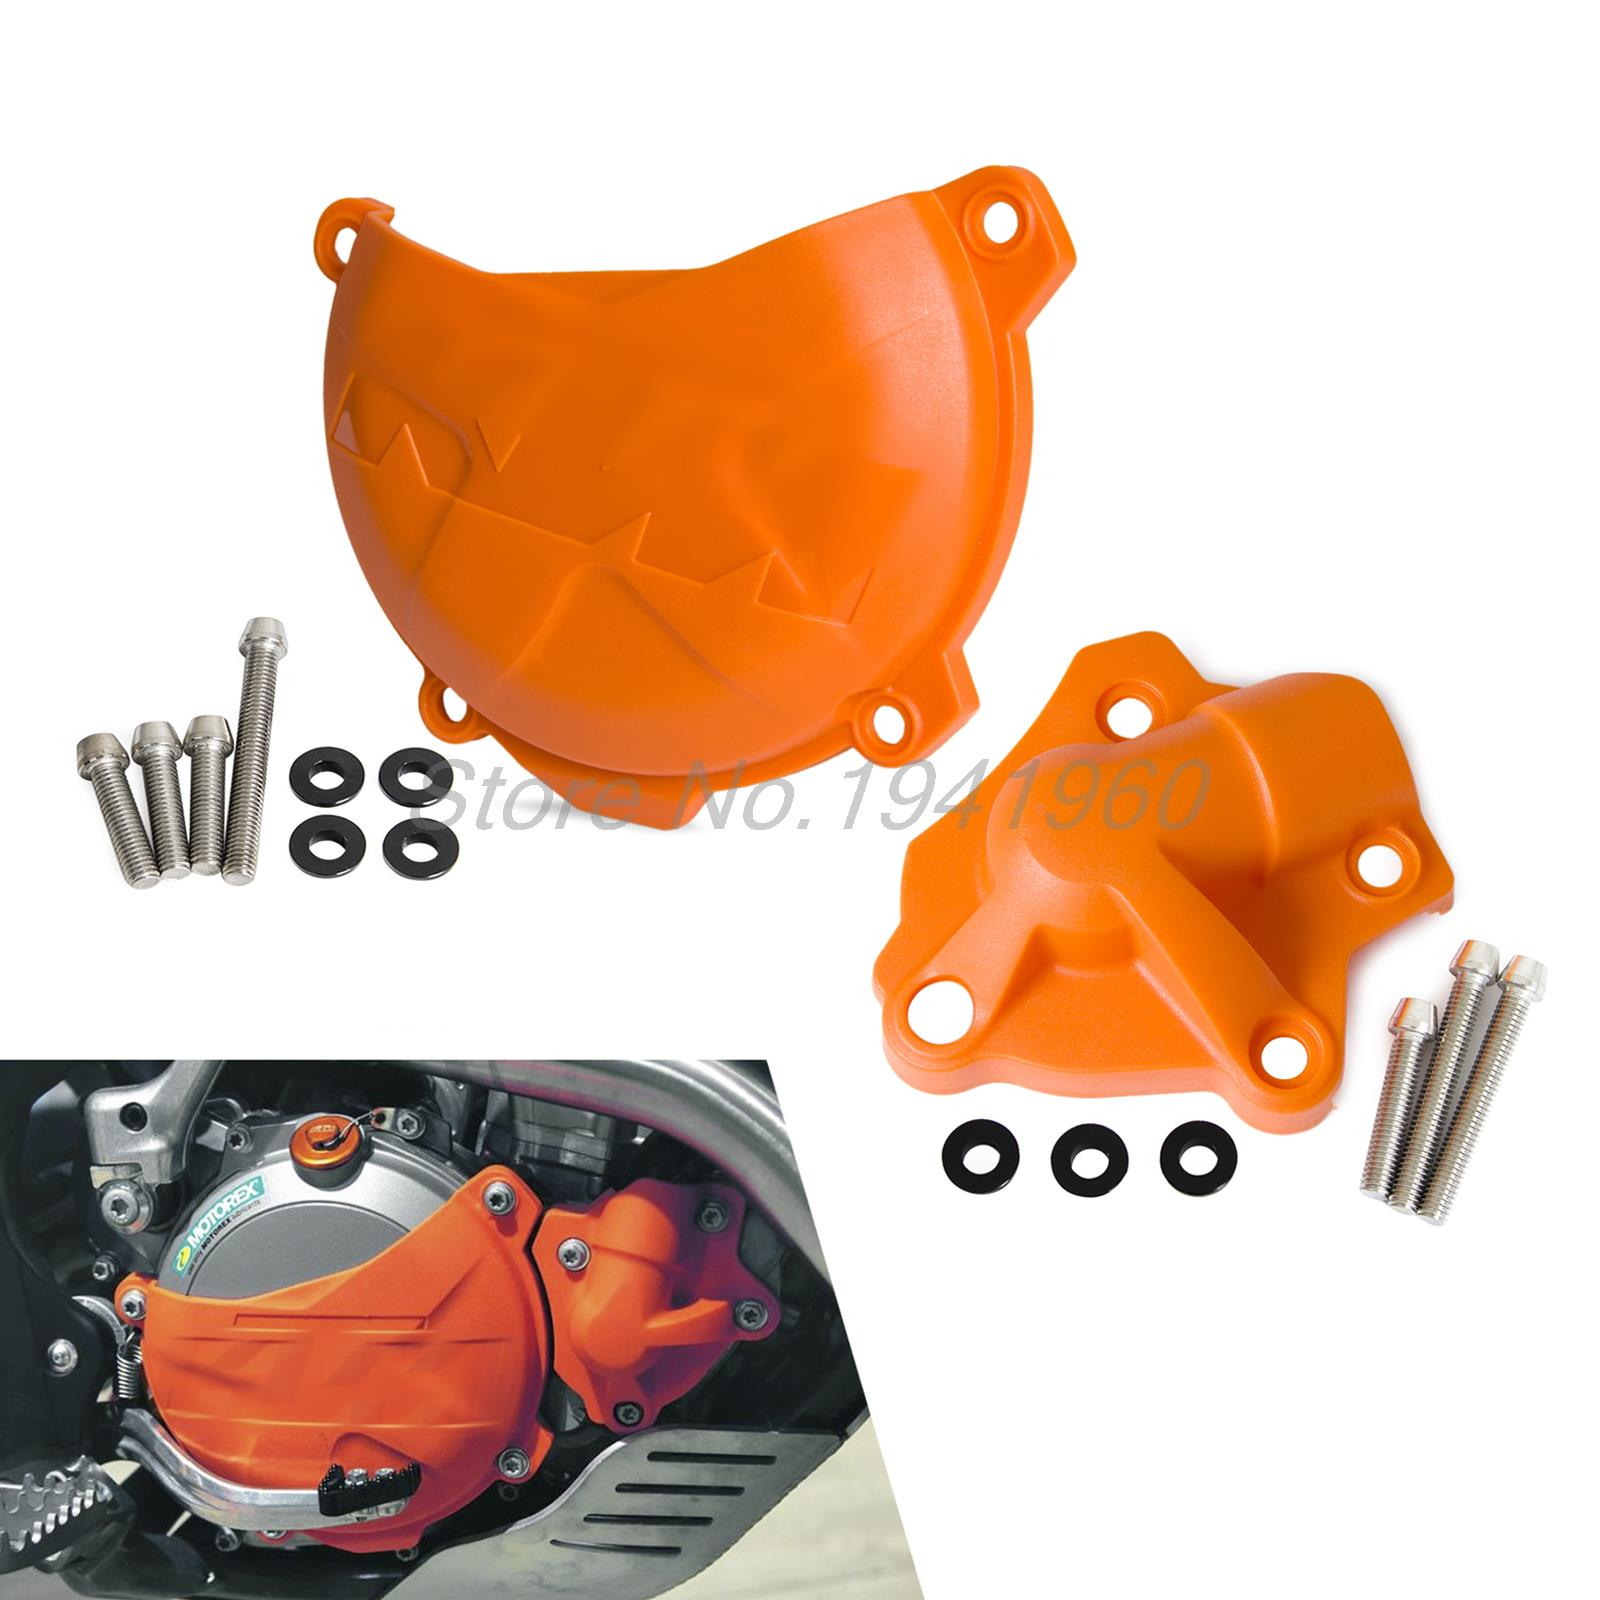 Clutch Cover/Water Pump Cover Protector for KTM 350 EXC-F SIX DAYS 2012-2015 2016<br>